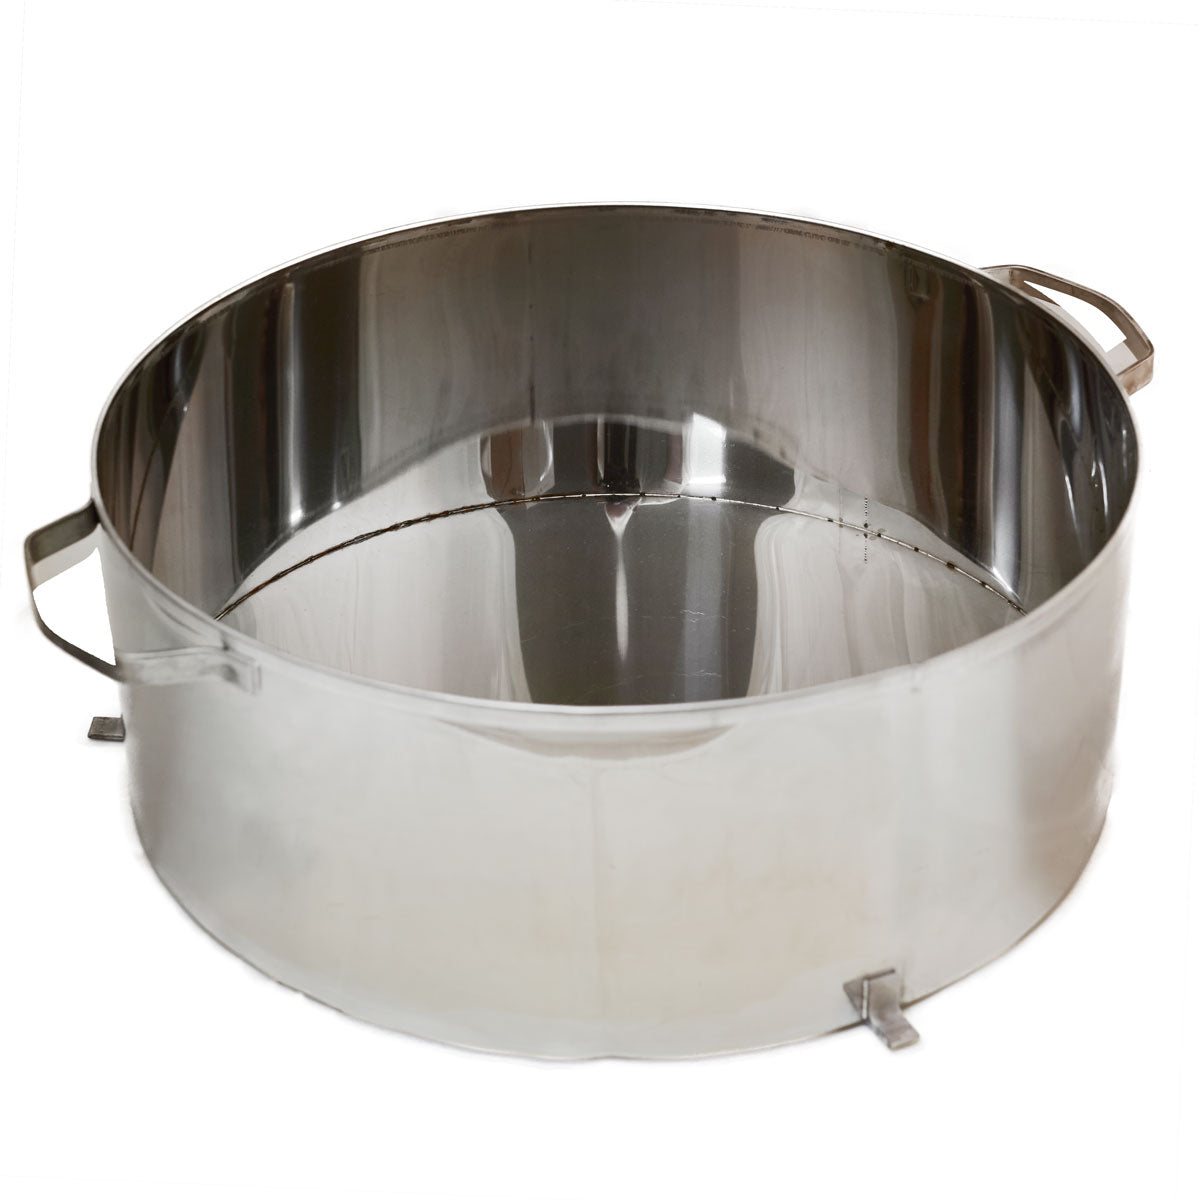 A stainless welded pan for a Leader cream machine. This would be a spare pan, or a replacement pan. Some producers like a spare pan so that they can have multiple batches going at the same time.